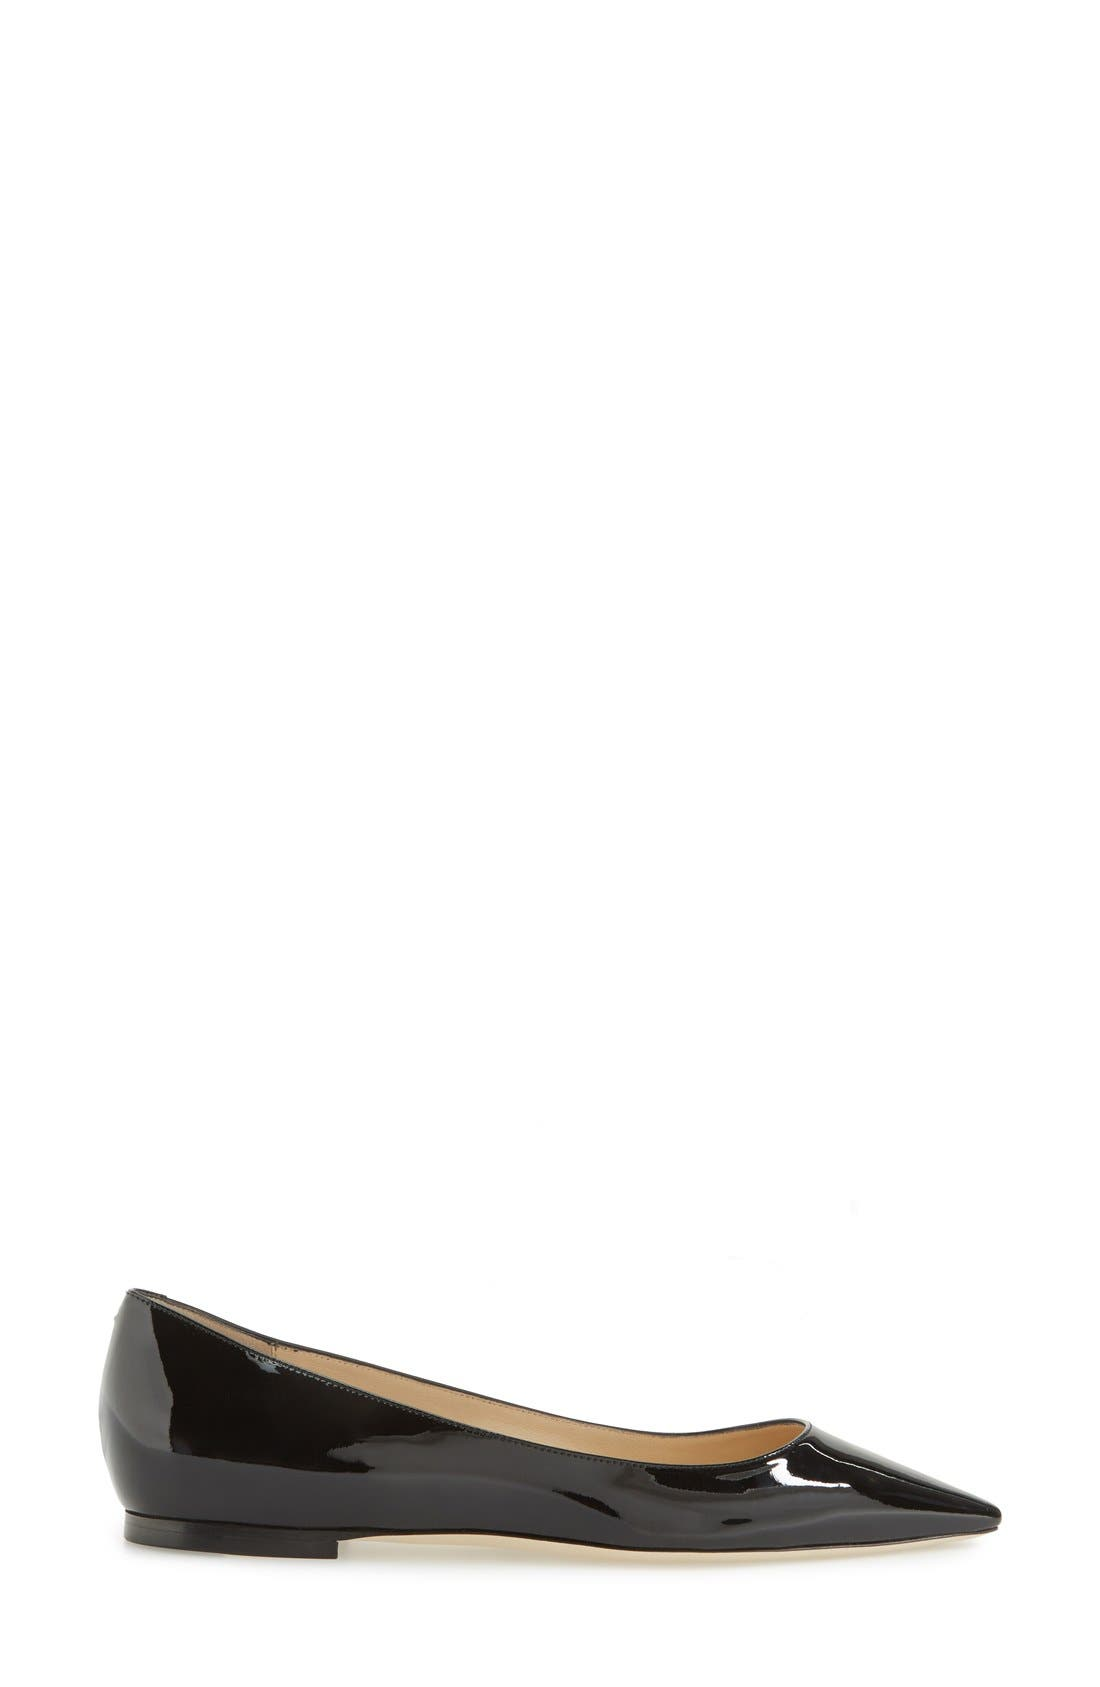 'Romy' Pointy Toe Flat,                             Alternate thumbnail 25, color,